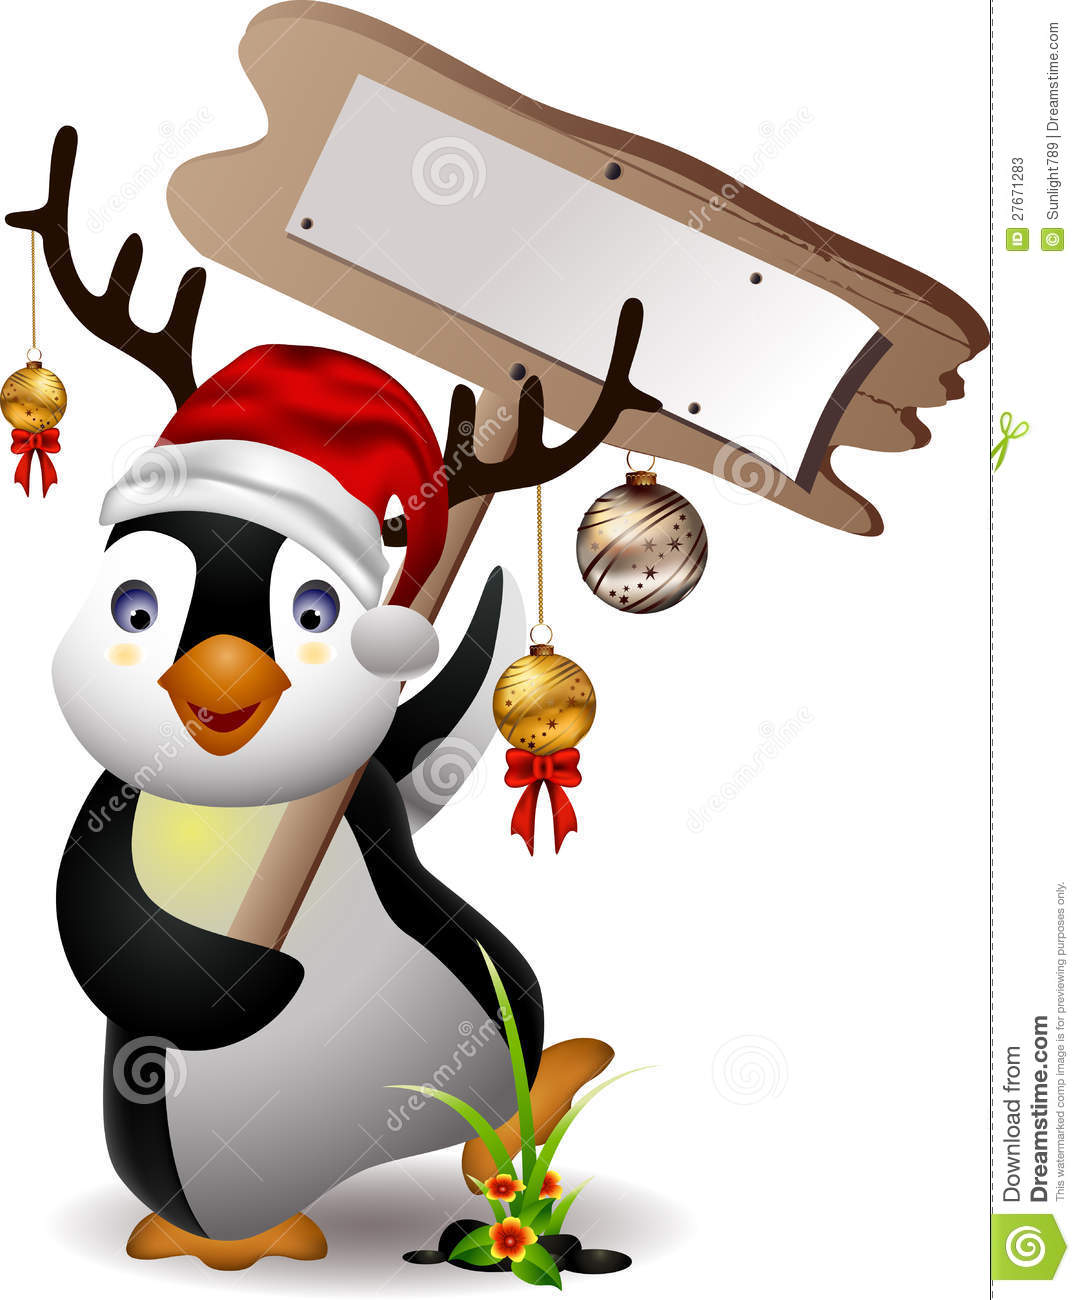 Cute Penguin Christmas Cartoon Stock Photos - Image: 27671283